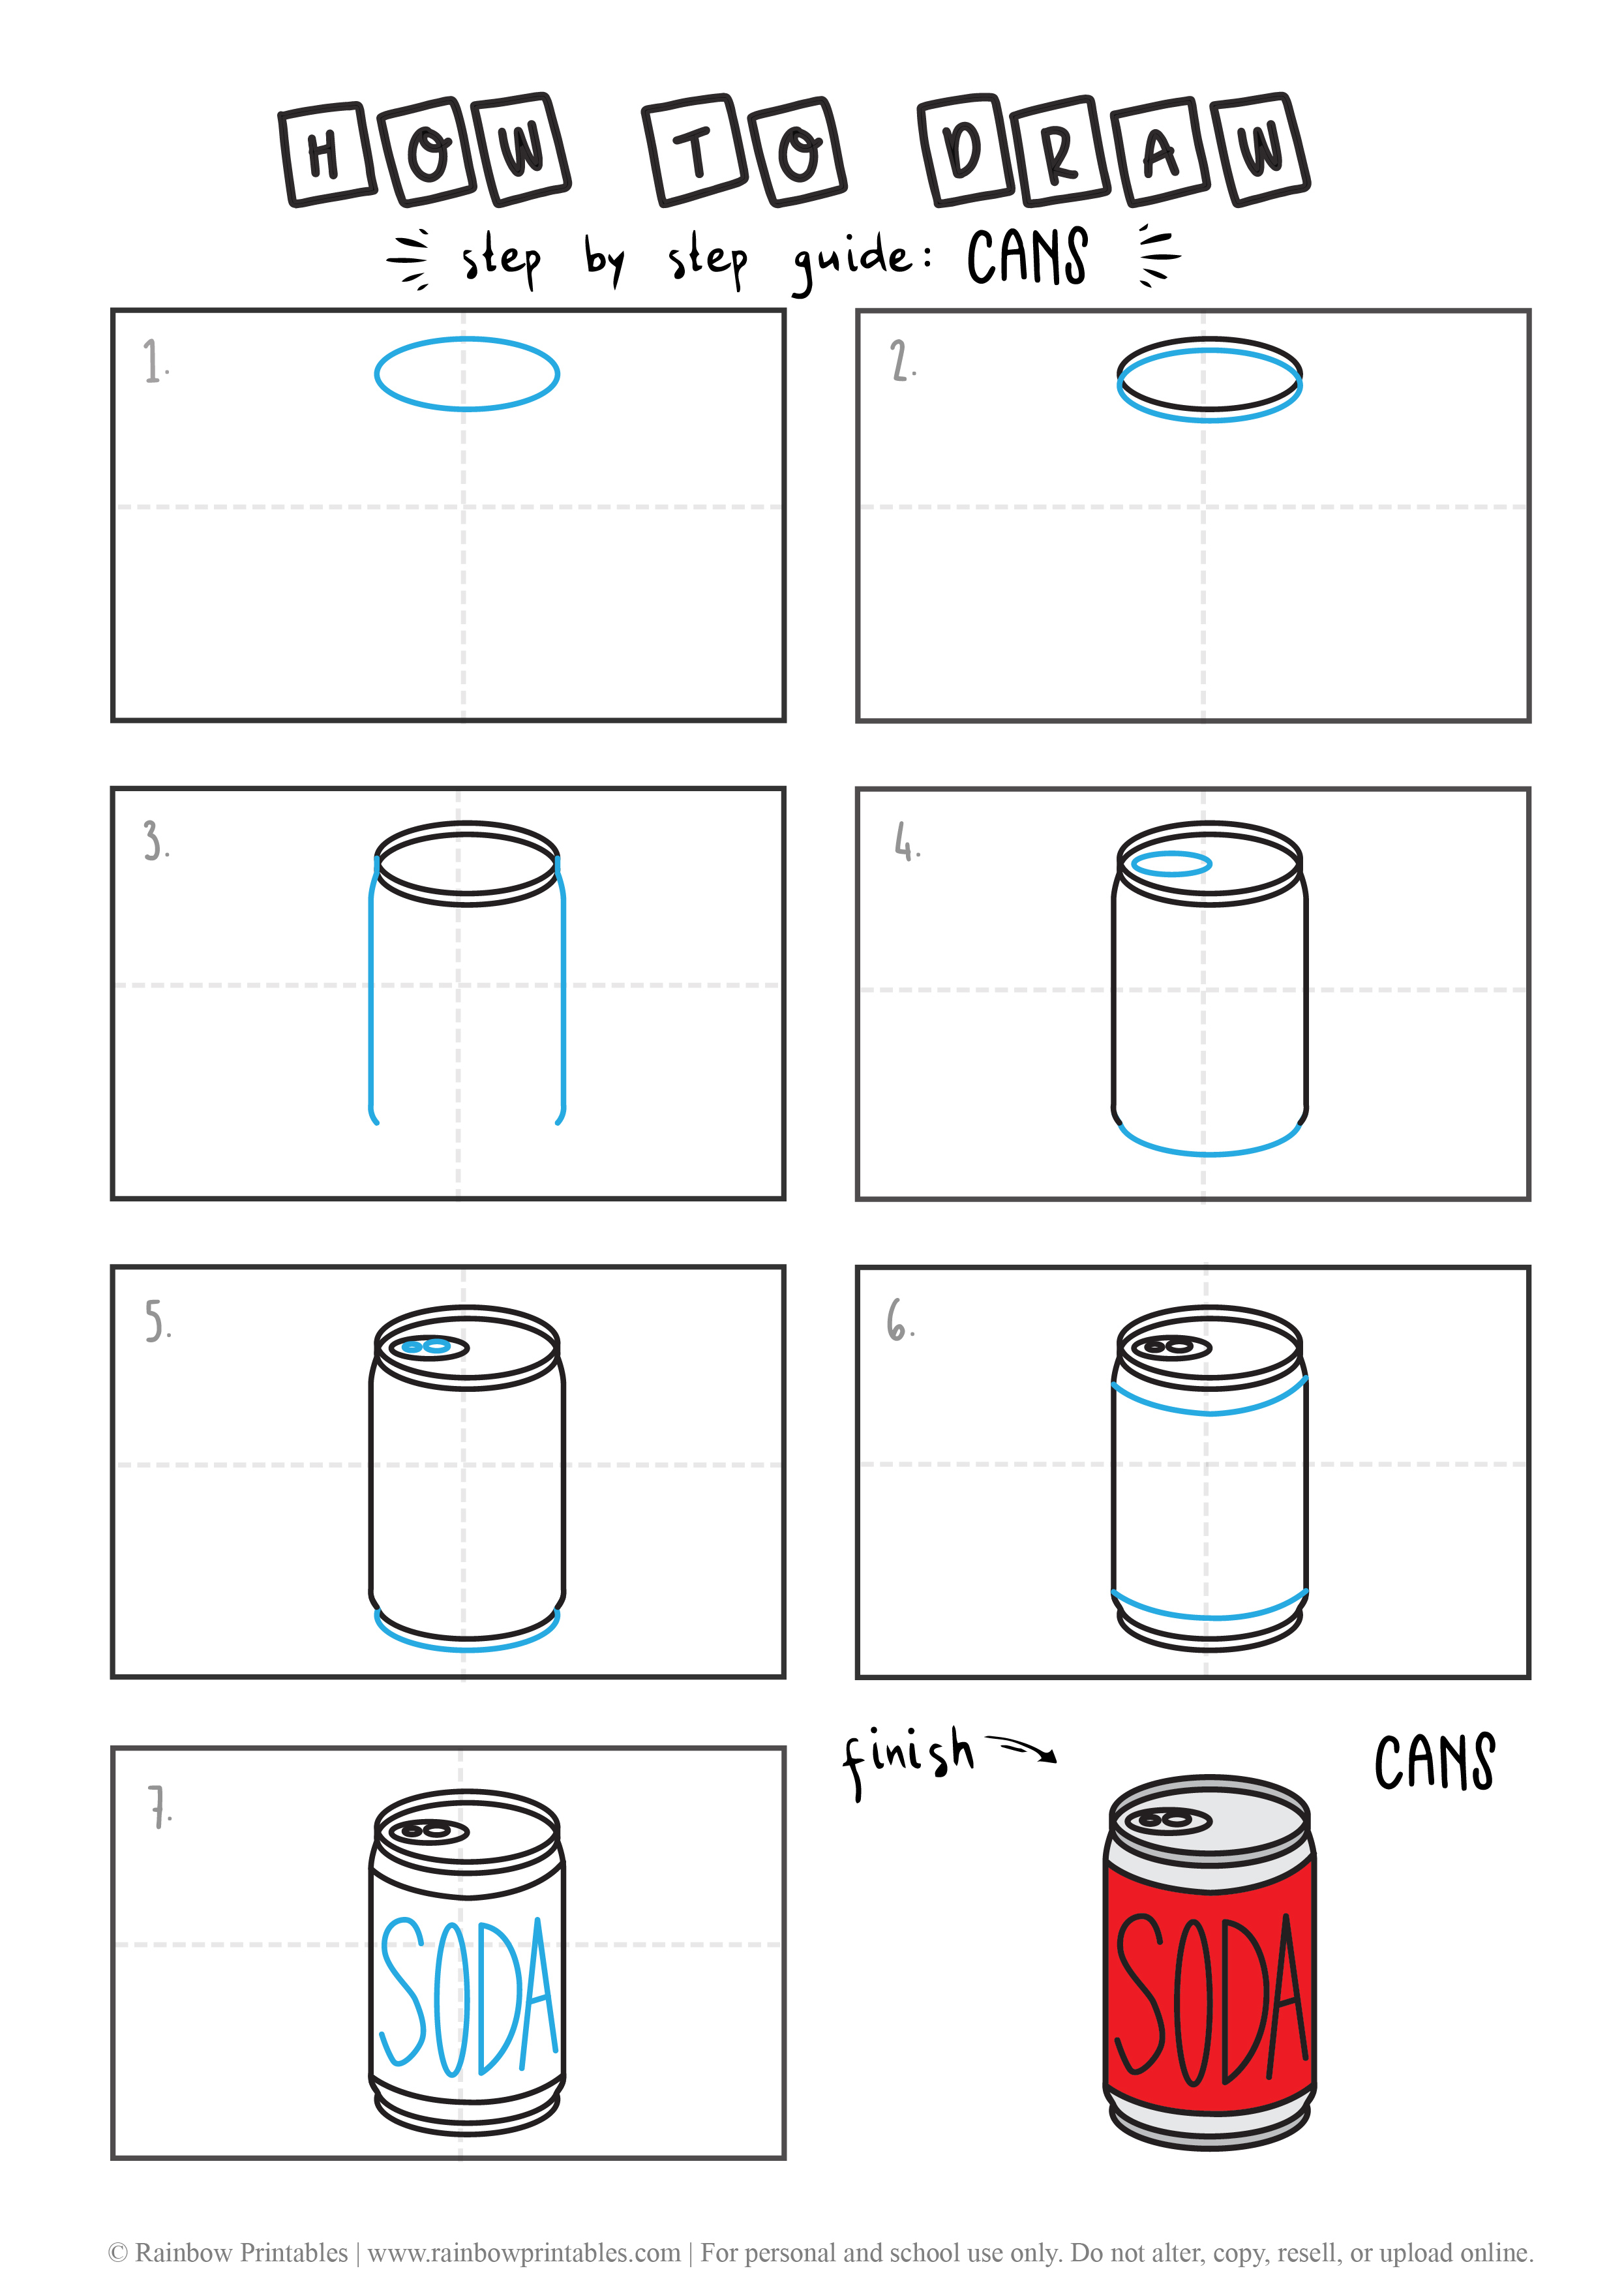 HOW TO DRAW A SODA CAN GUIDE ILLUSTRATION STEP BY STEP EASY SIMPLE FOR KIDS